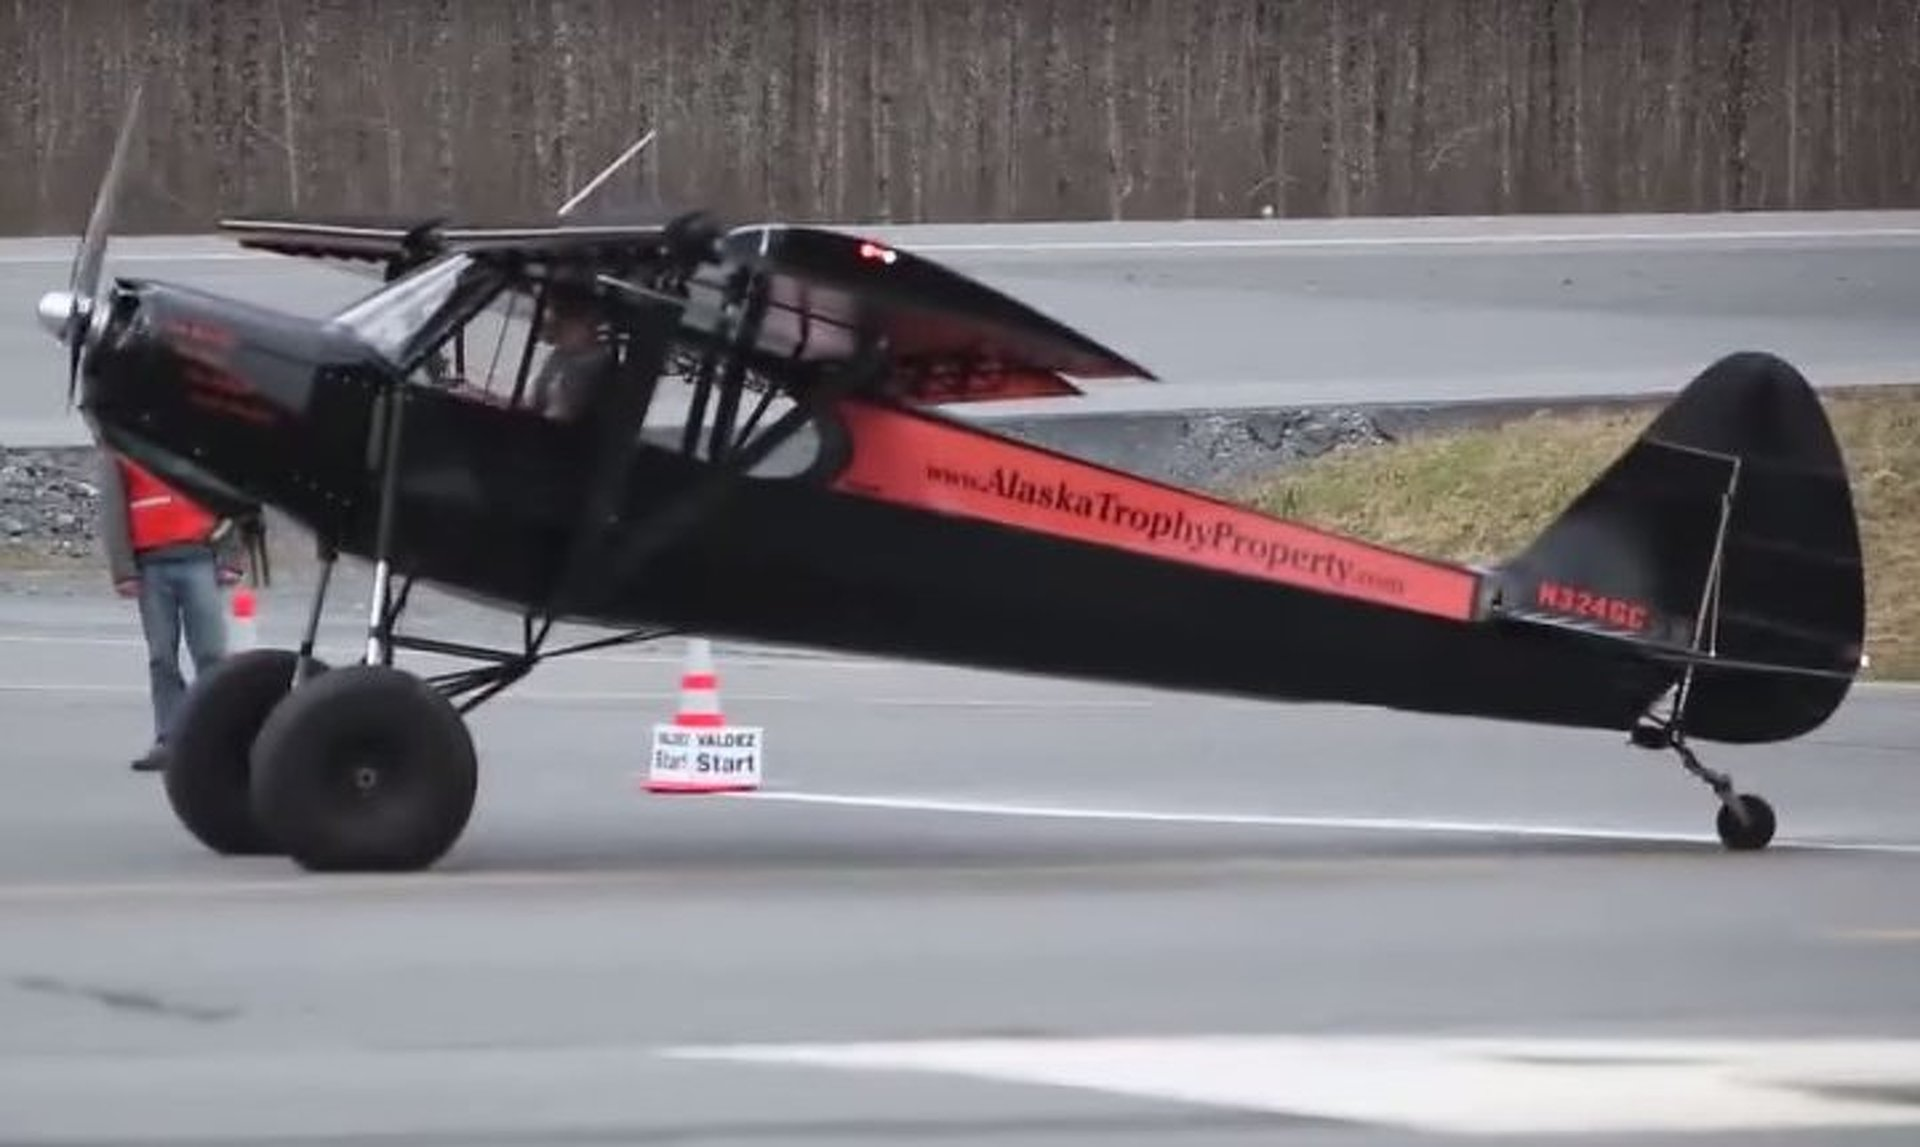 Watch This Airplane Take-Off and Land in Just 25 Feet!